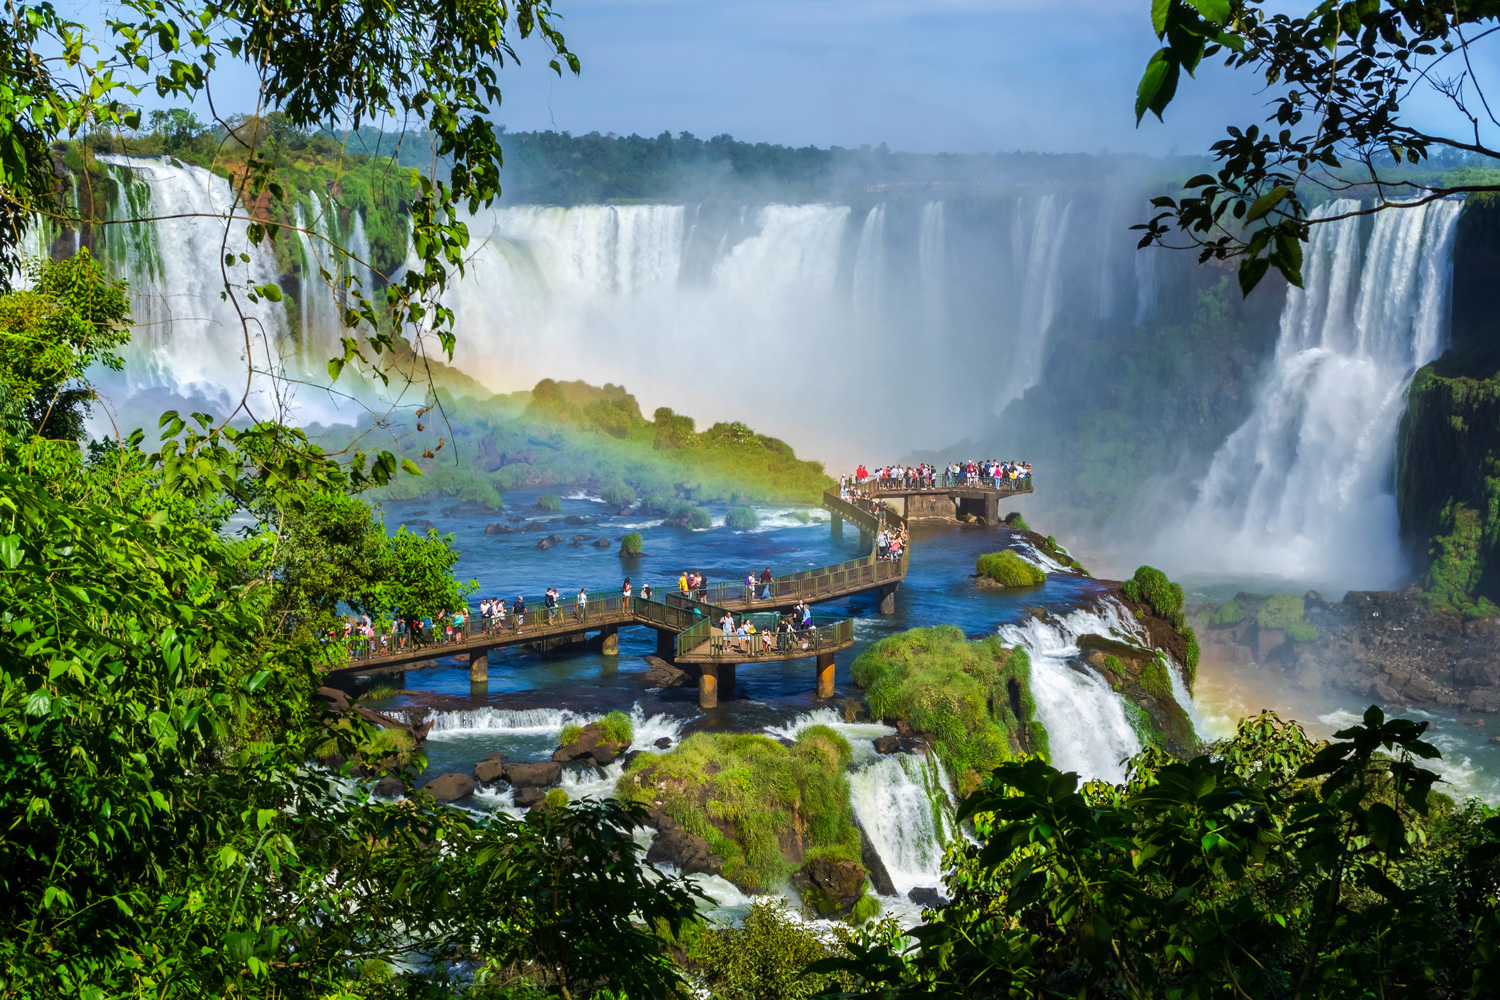 Tourists at Iguazu Falls, on the border of Brazil and Argentina